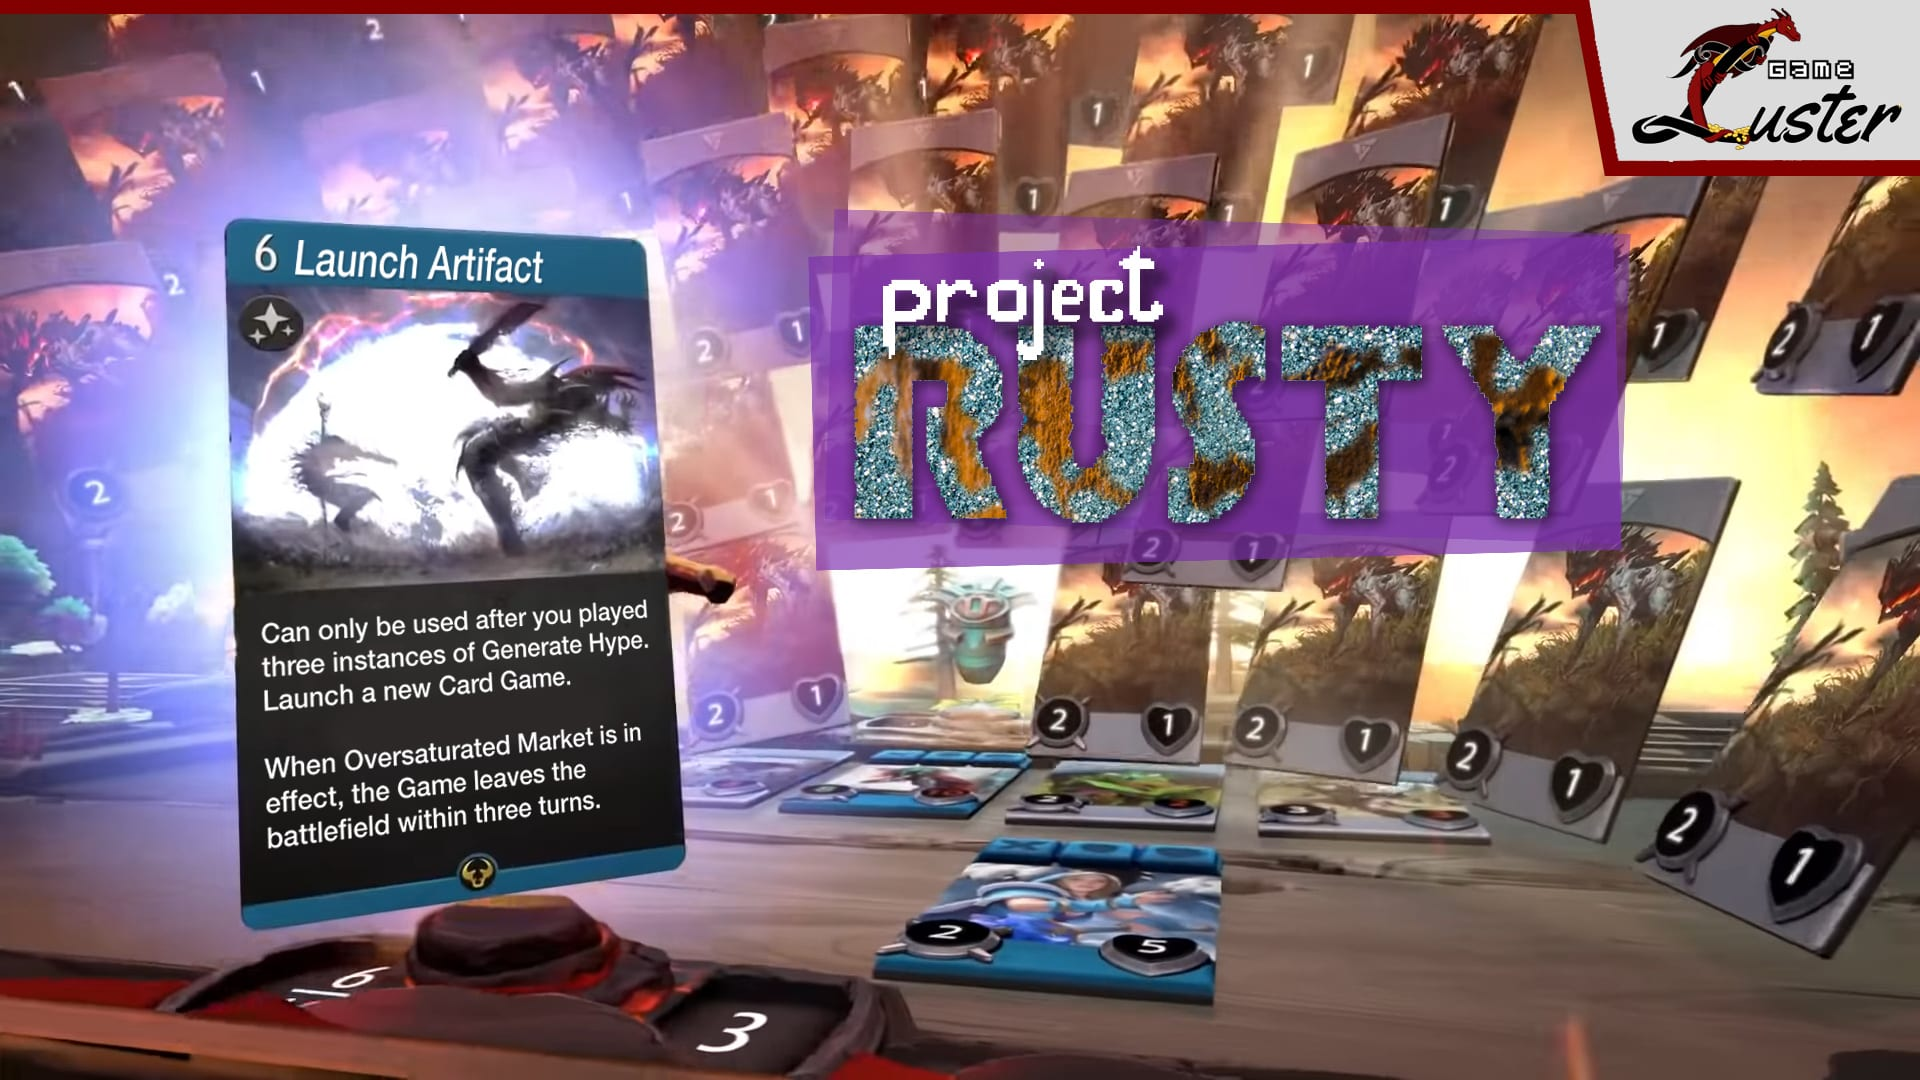 Project Rusty Artifact